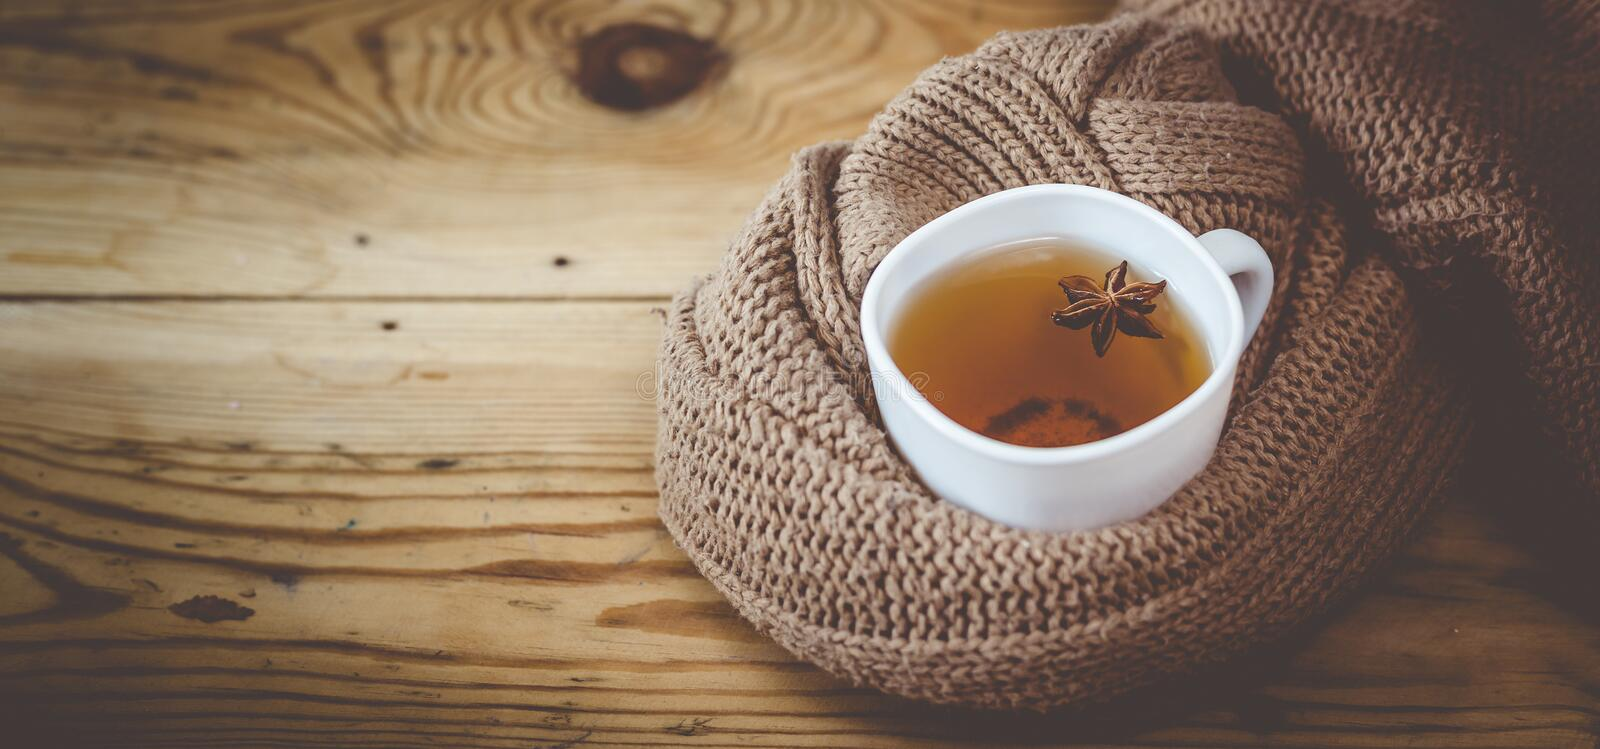 Cup of hot tea on wooden table. Cold autumn or winter days. A cup of hot tea on wooden table. Cold autumn or winter days. Warming herbal drink. Copy space royalty free stock photography